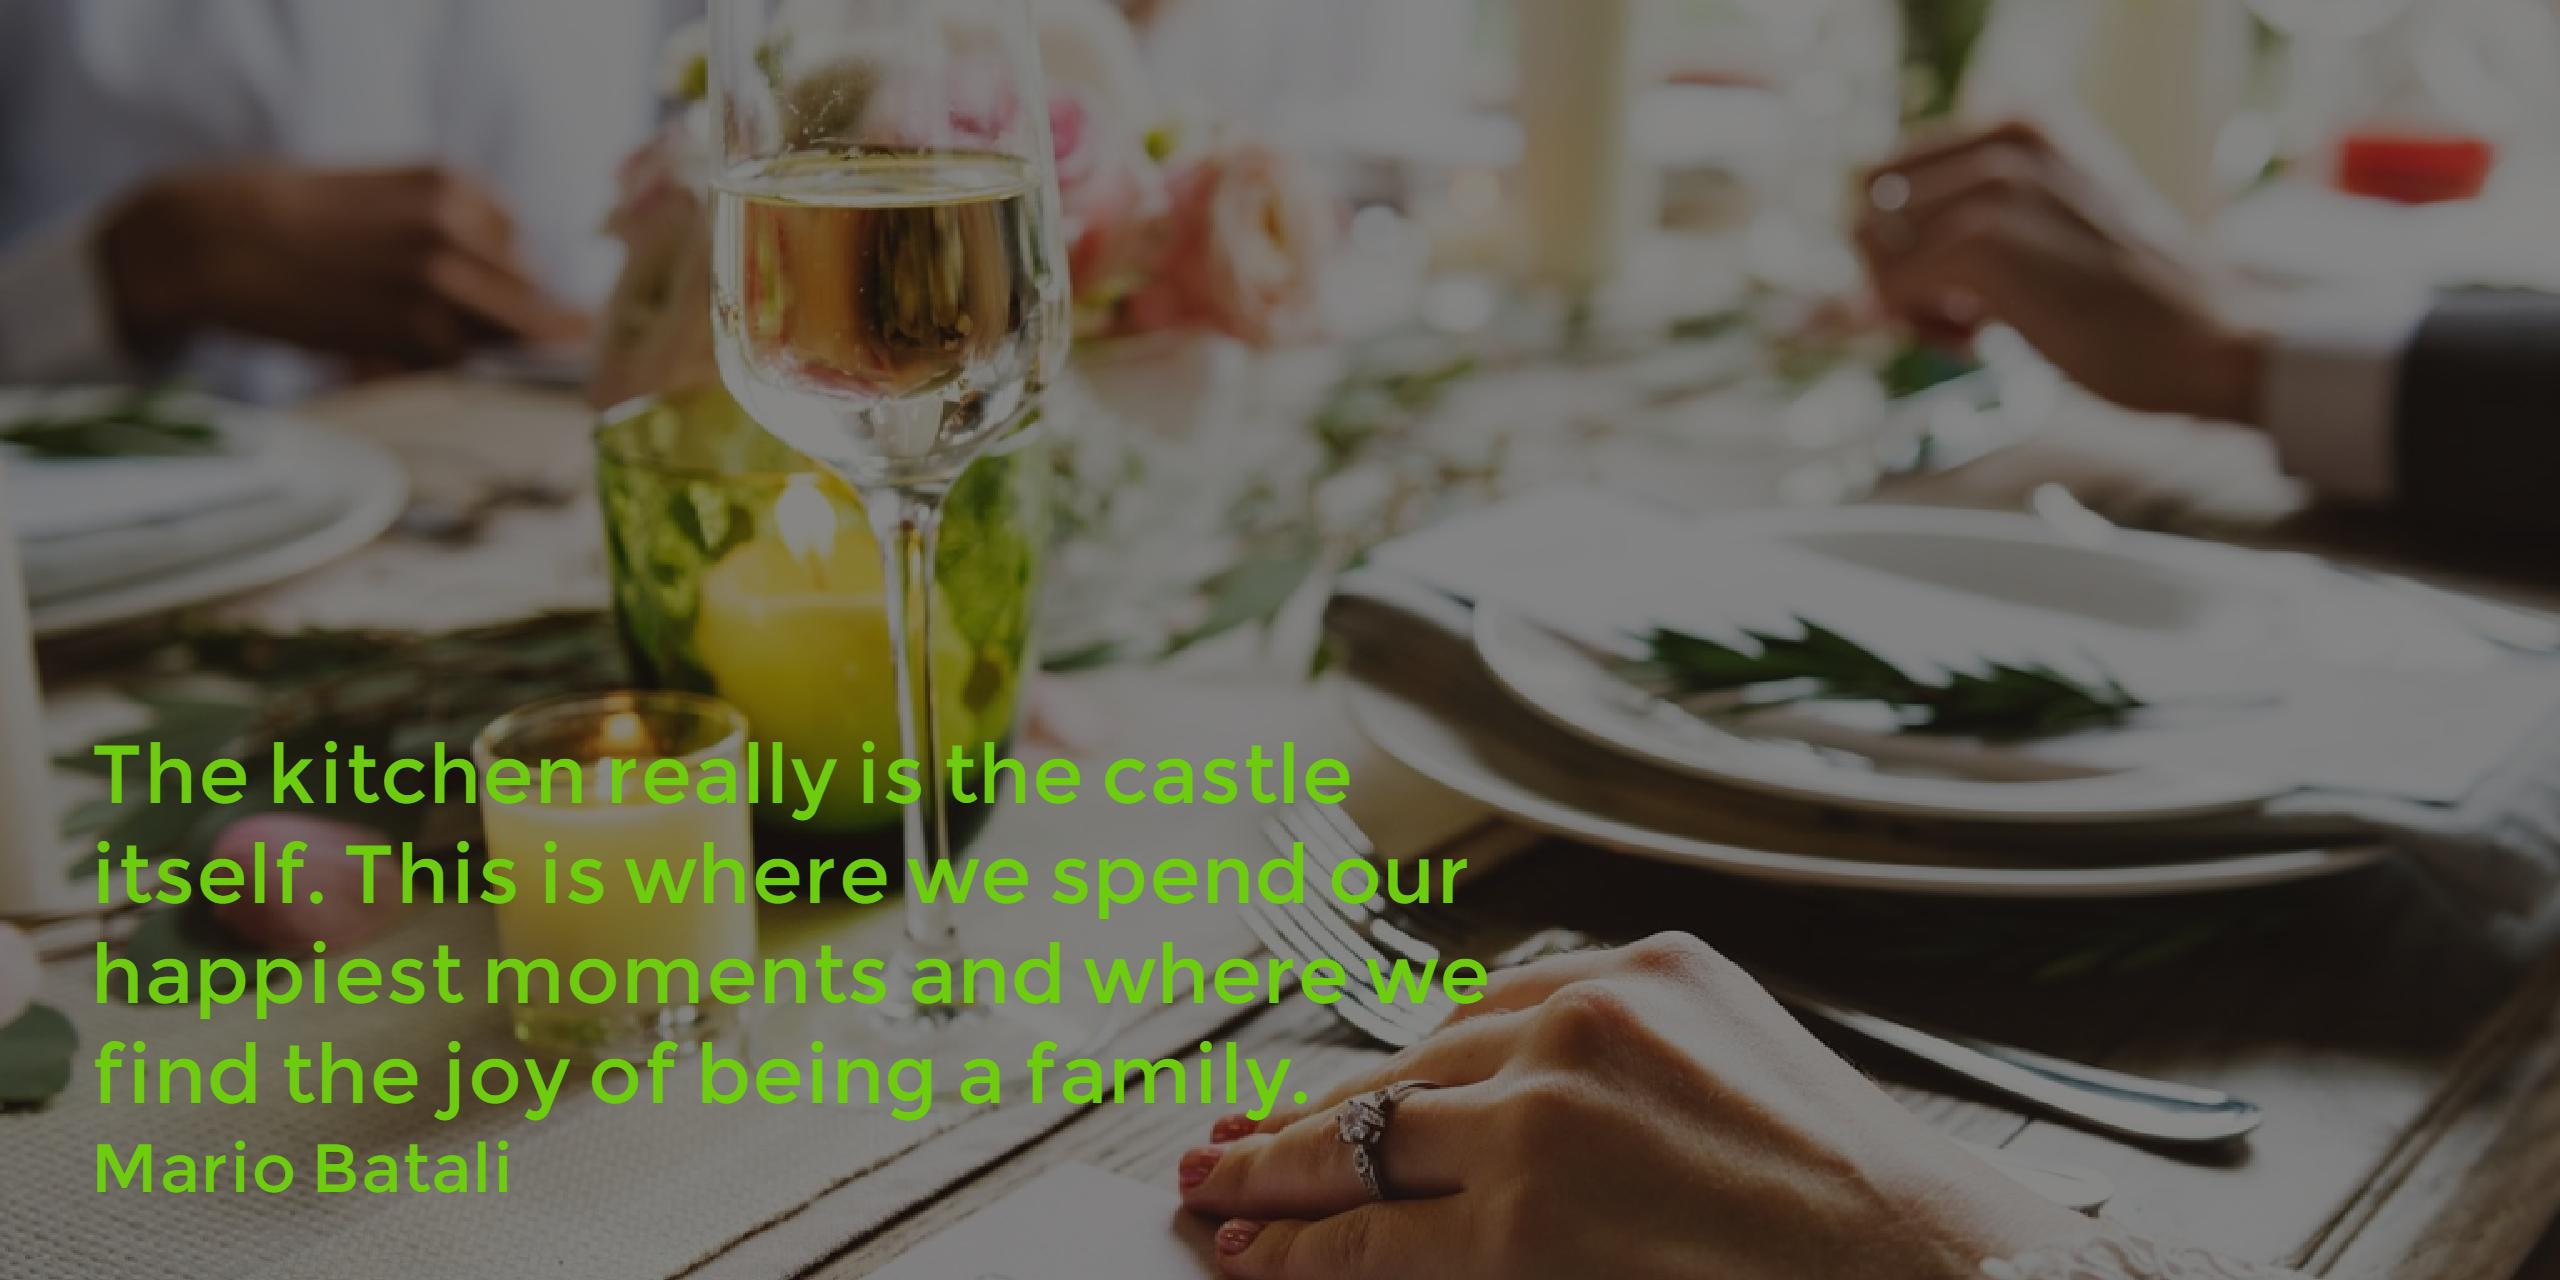 The kitchen is really the castle itself. It's where we spend our happiest moments...